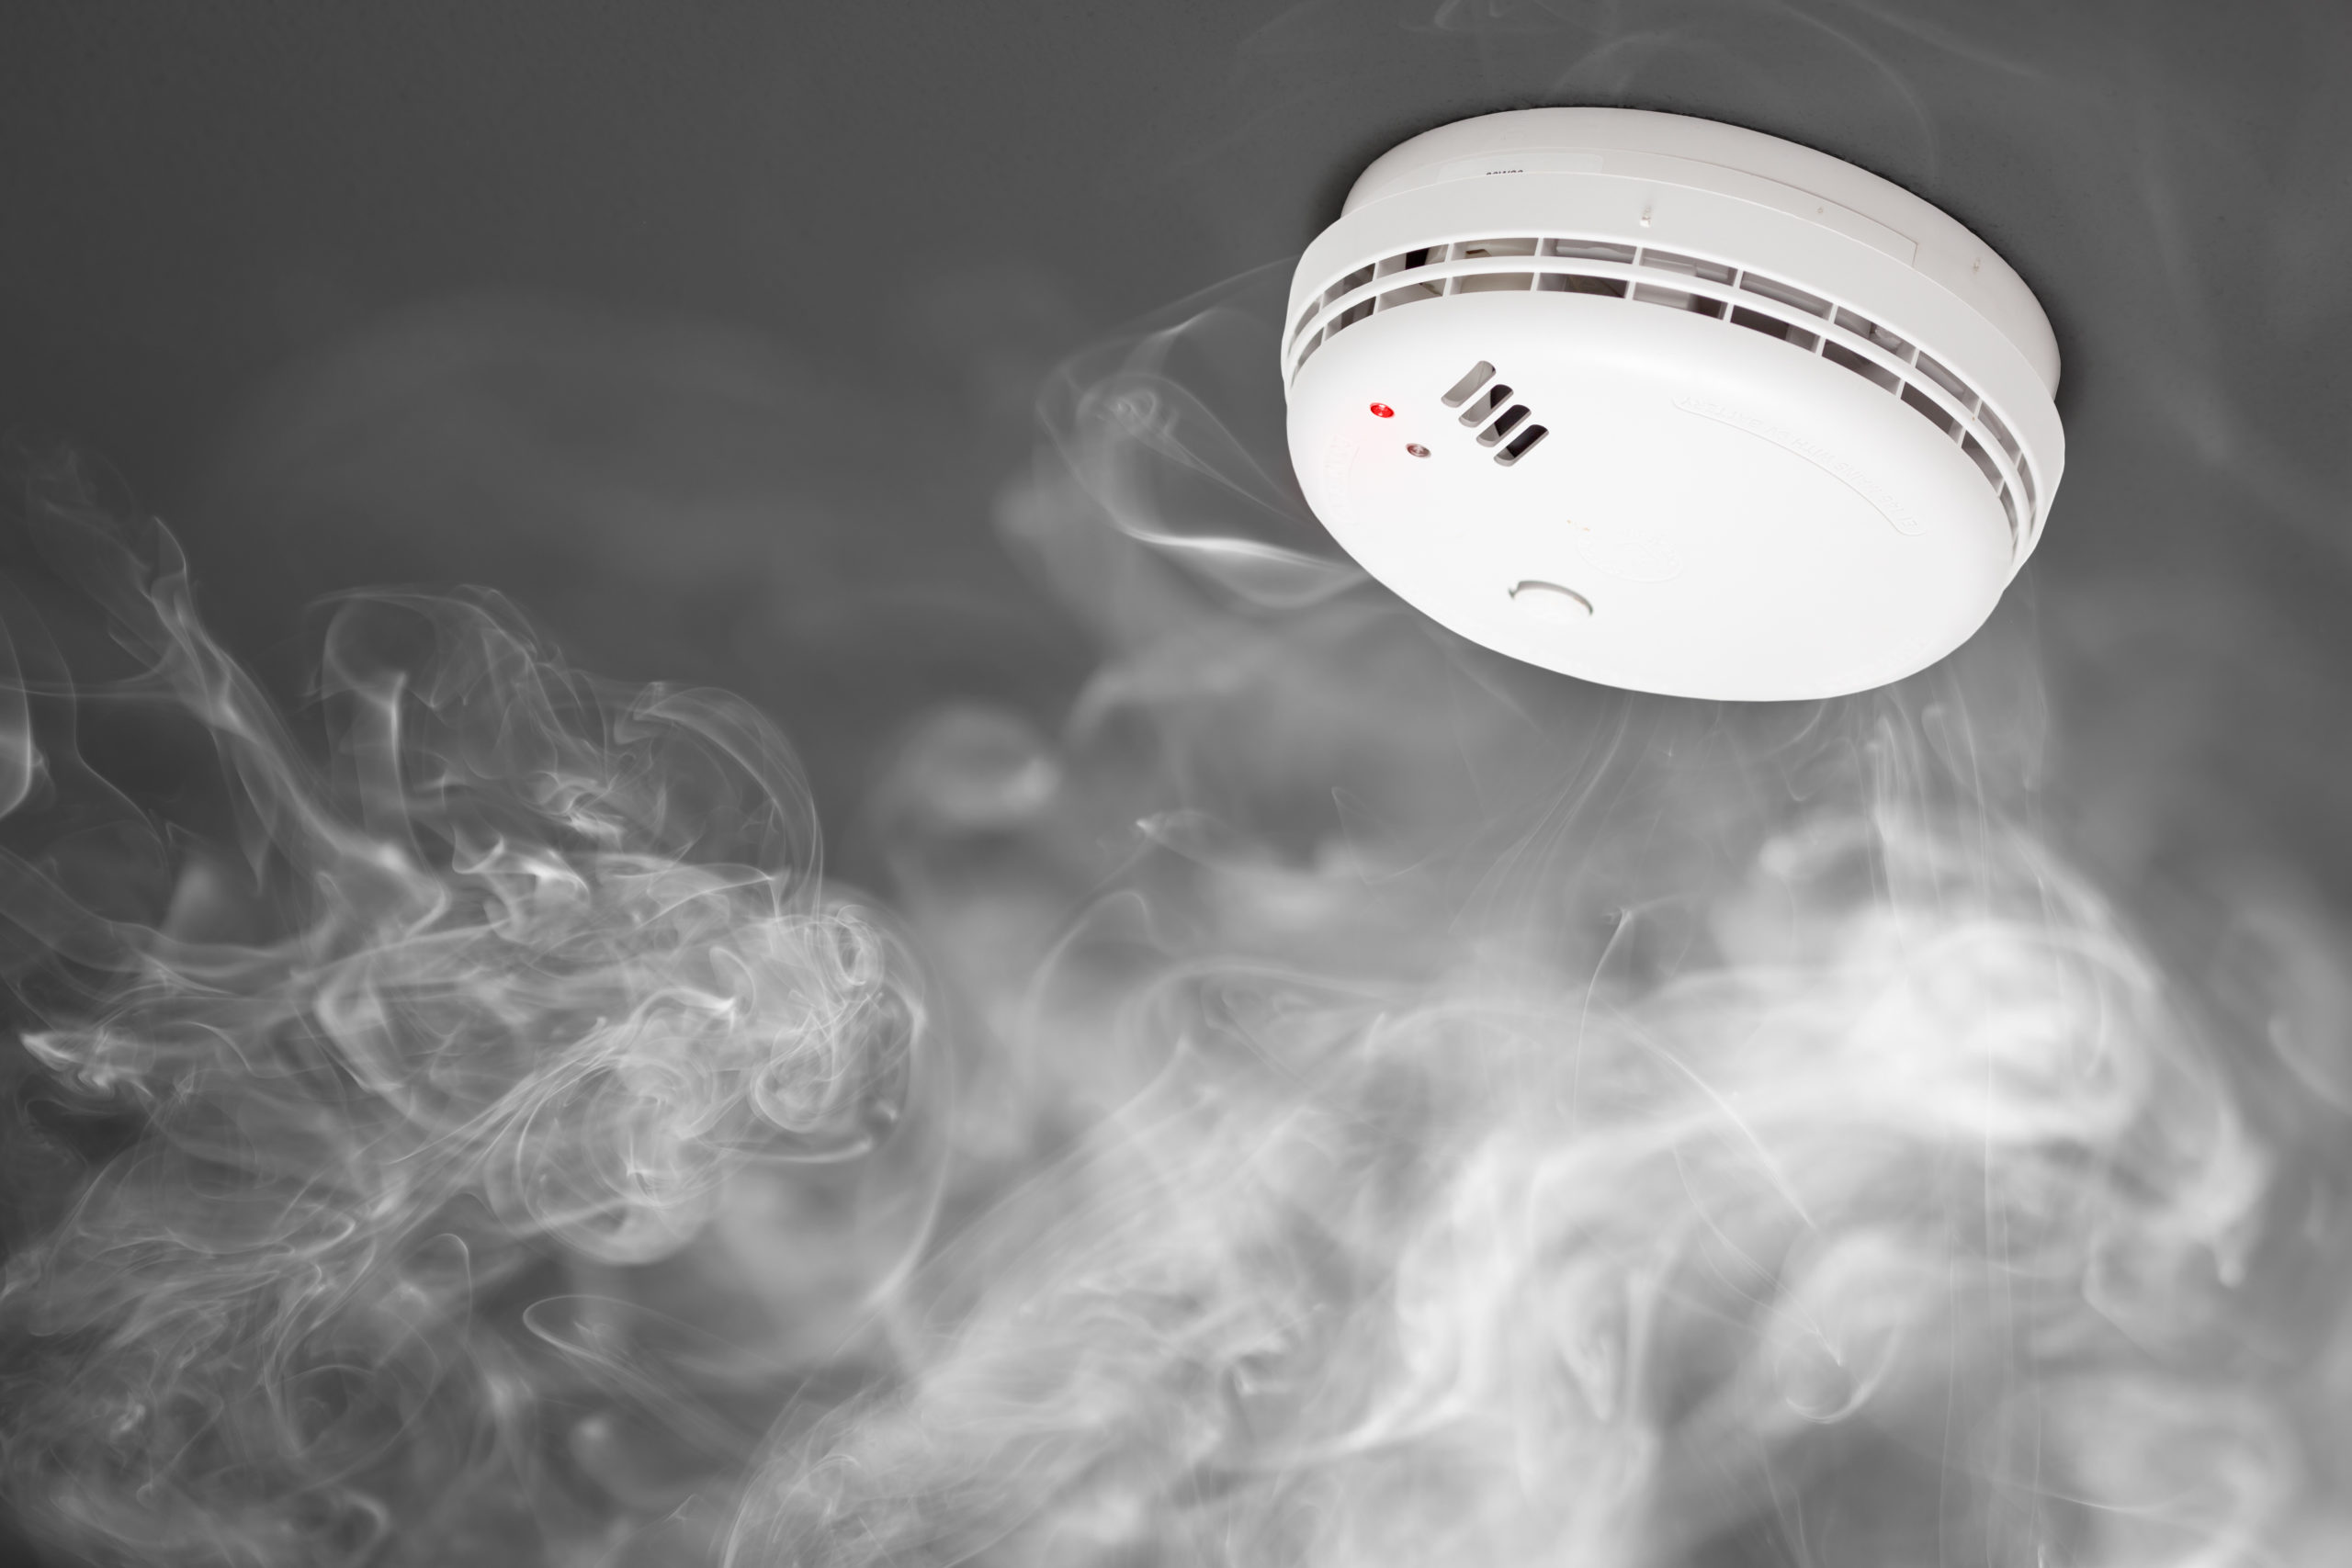 Fire Alarm System Detecting Smoke